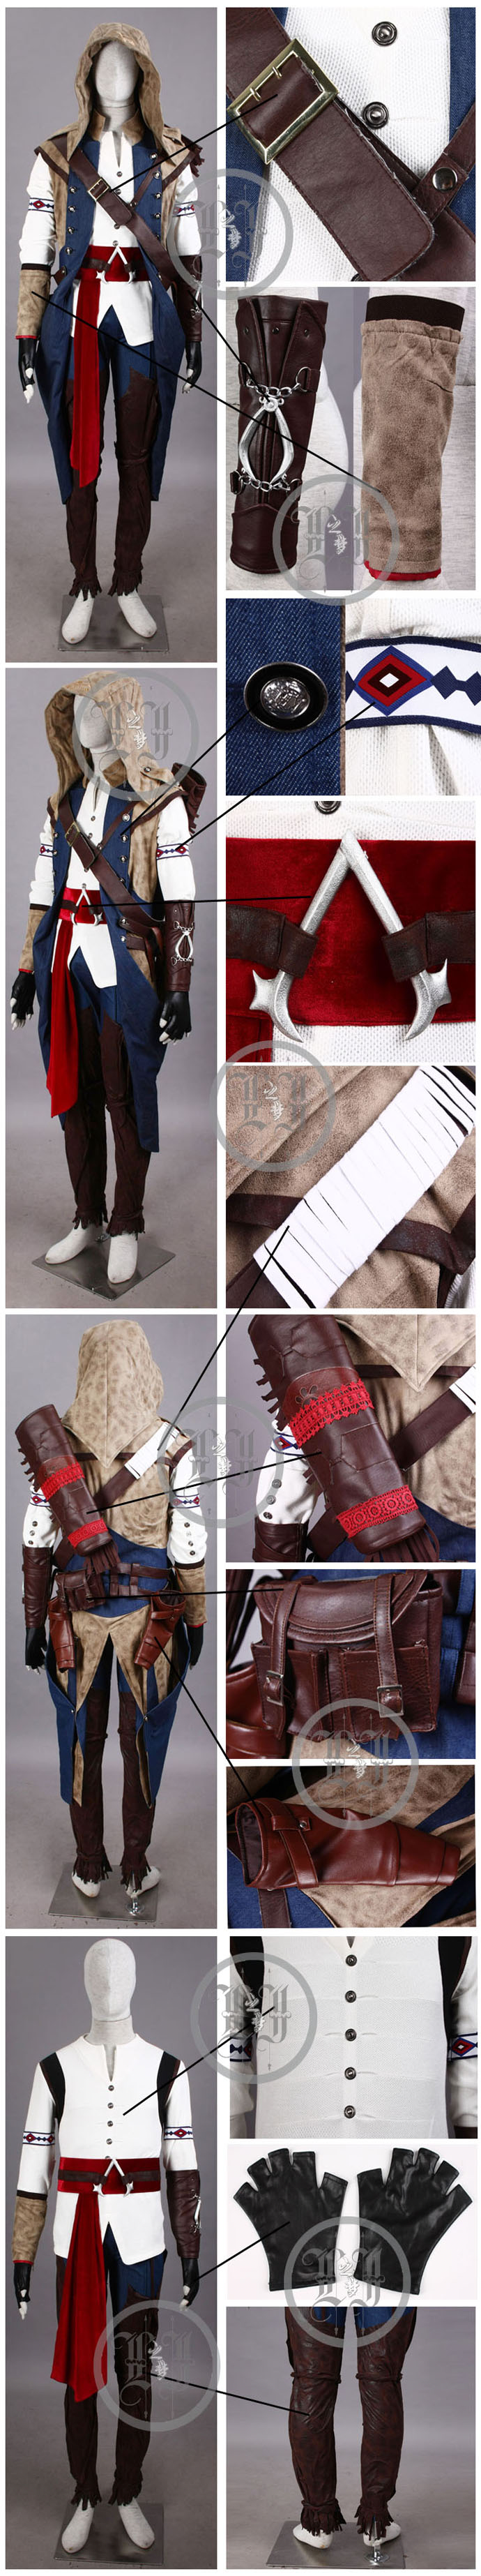 Assassin's Creed 3 Connor Kenway Costume